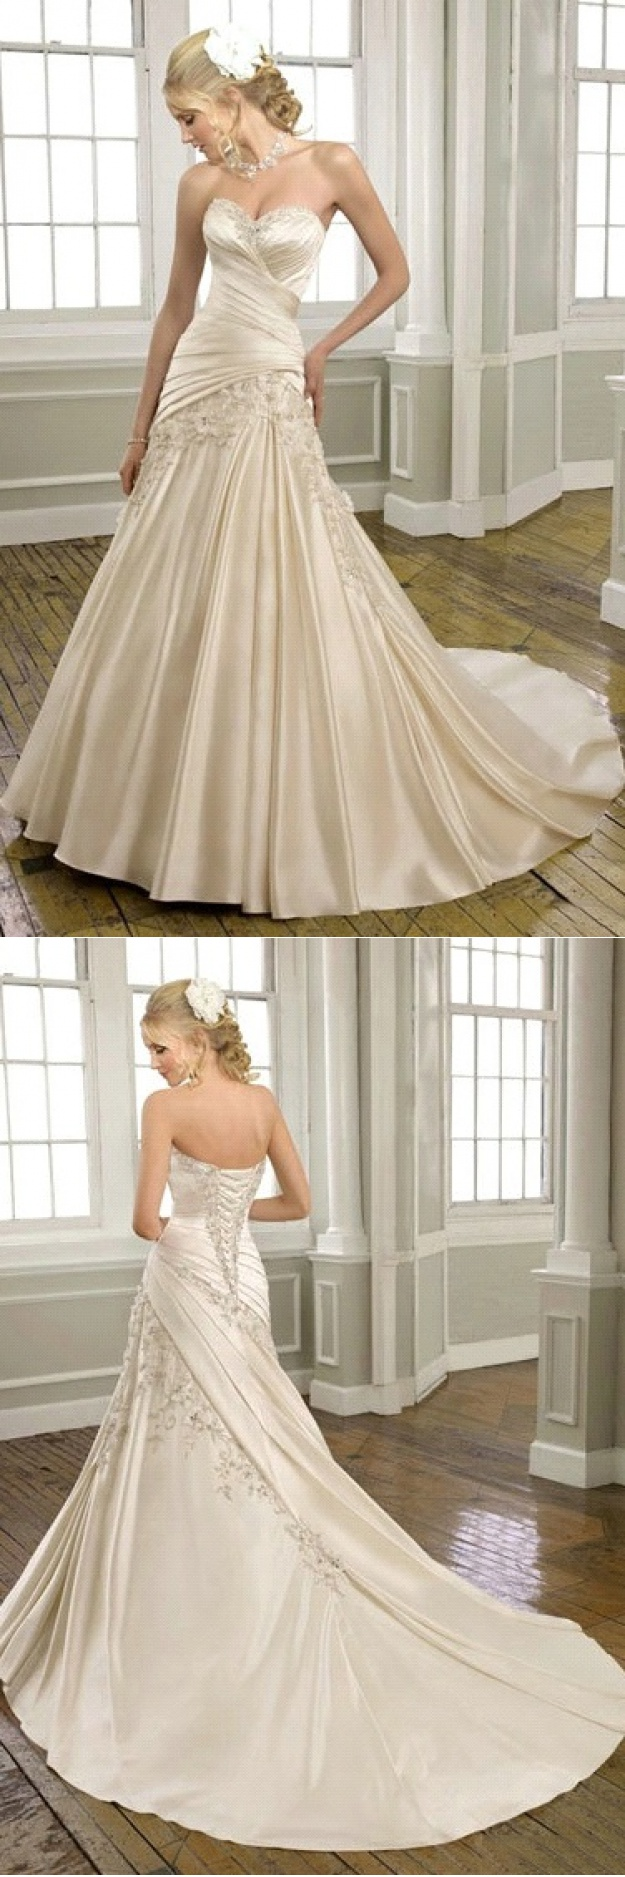 Cozy Designer Wedding Dresses Bride Weddings Dresses Event Hoop ...